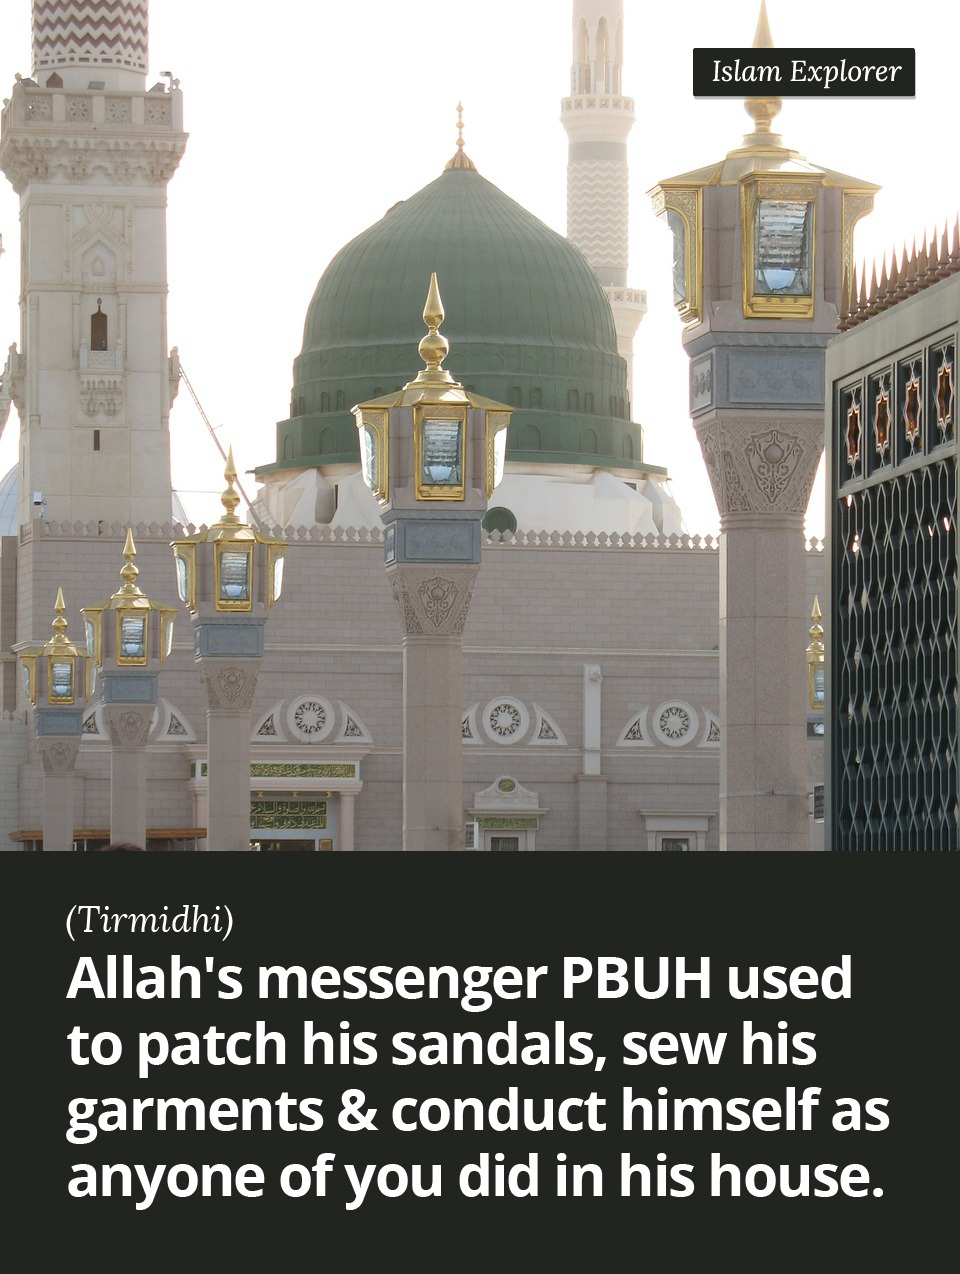 Allah's messenger PBUH used to patch his sandals